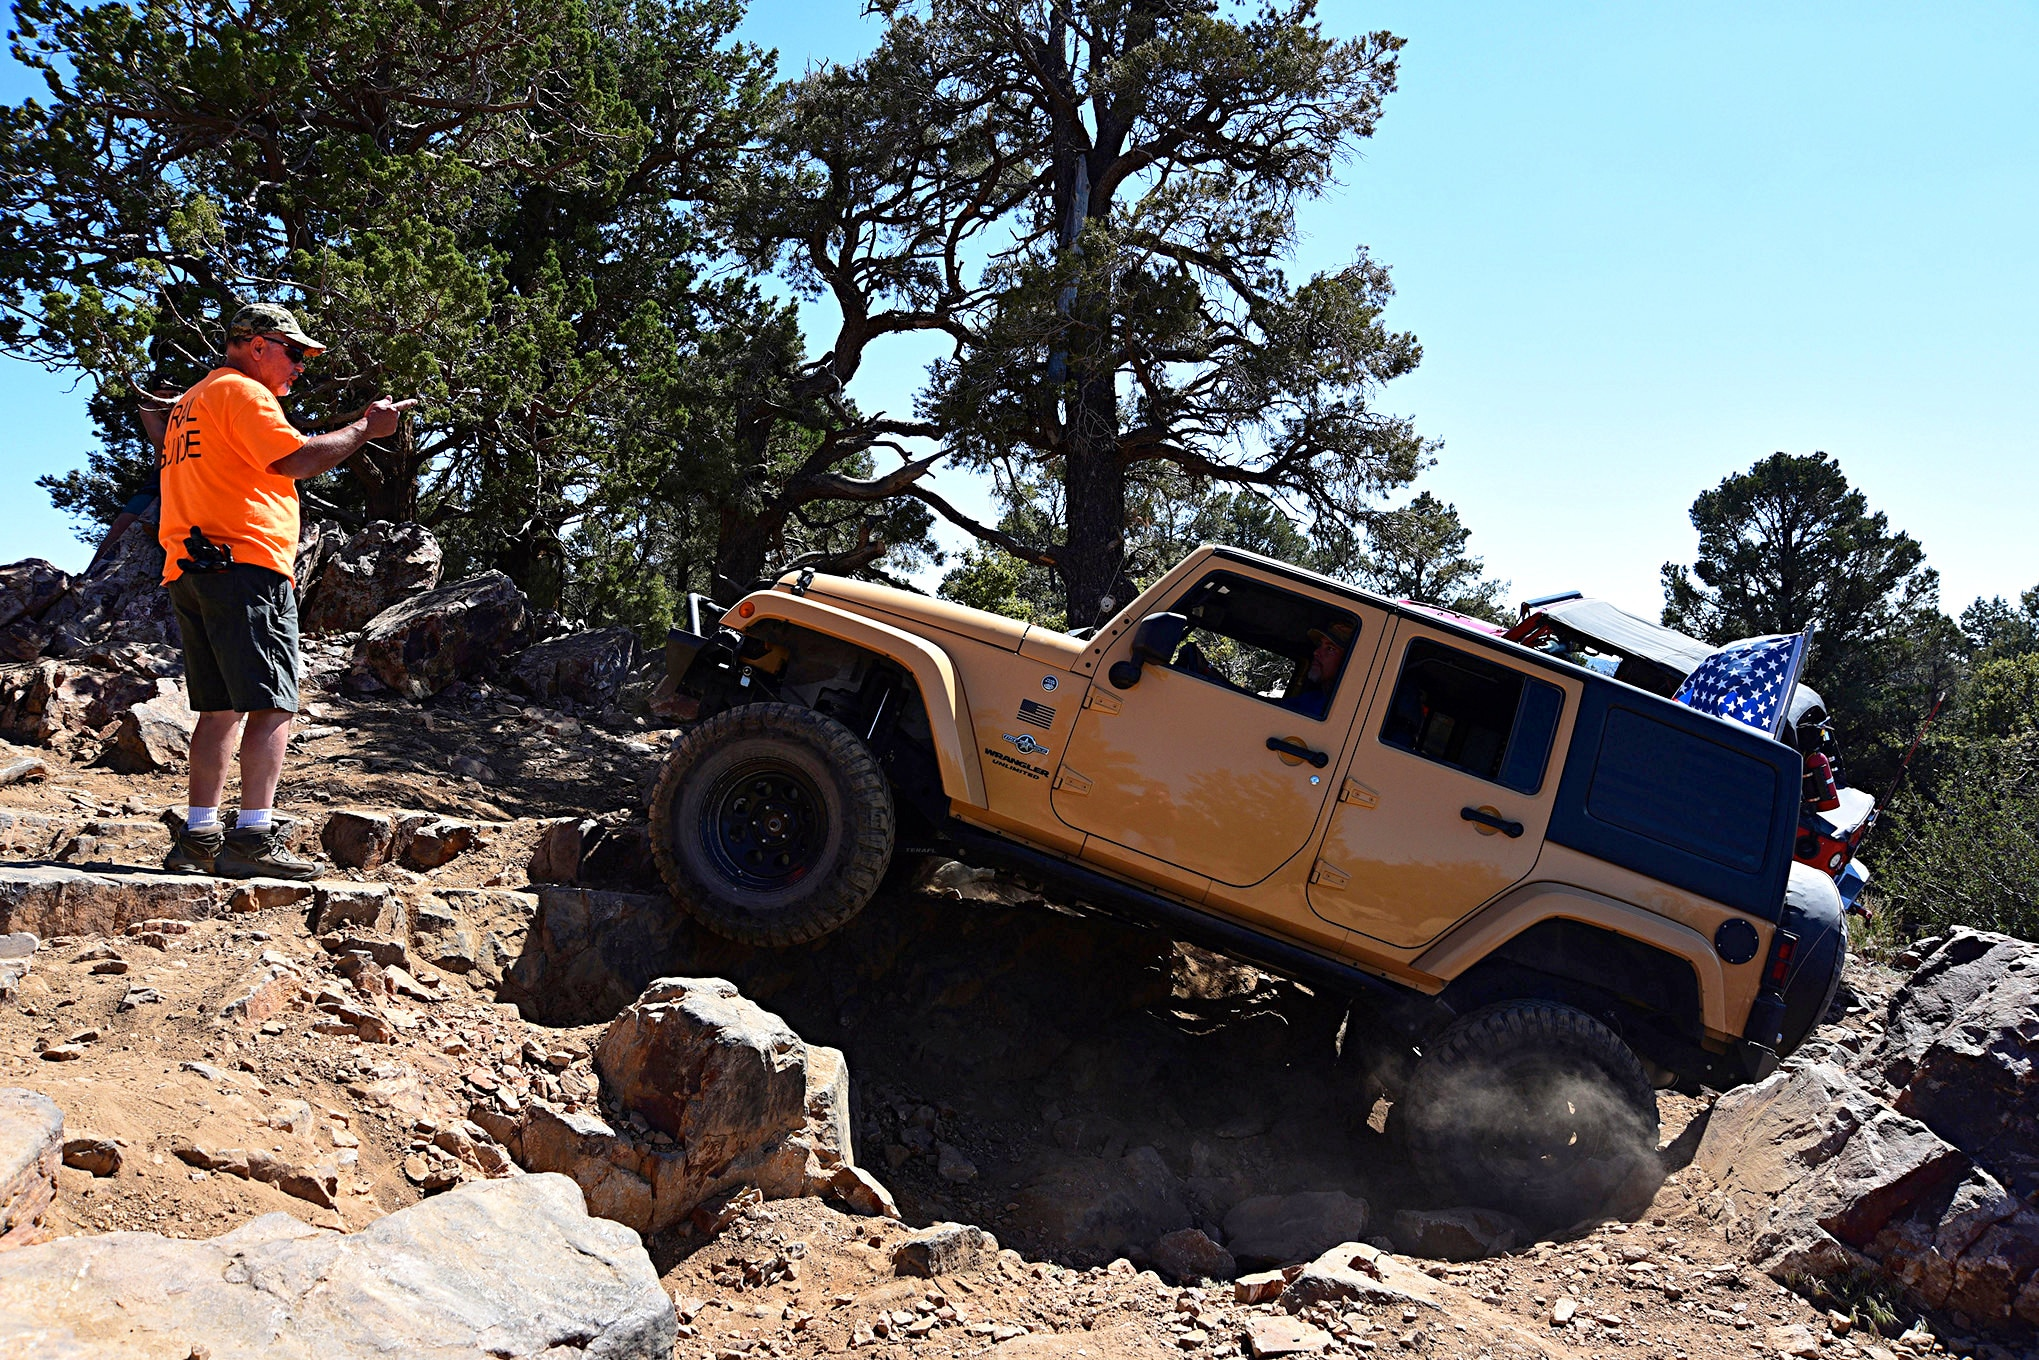 031 jeep event big bear forest fest 2019 inland empire